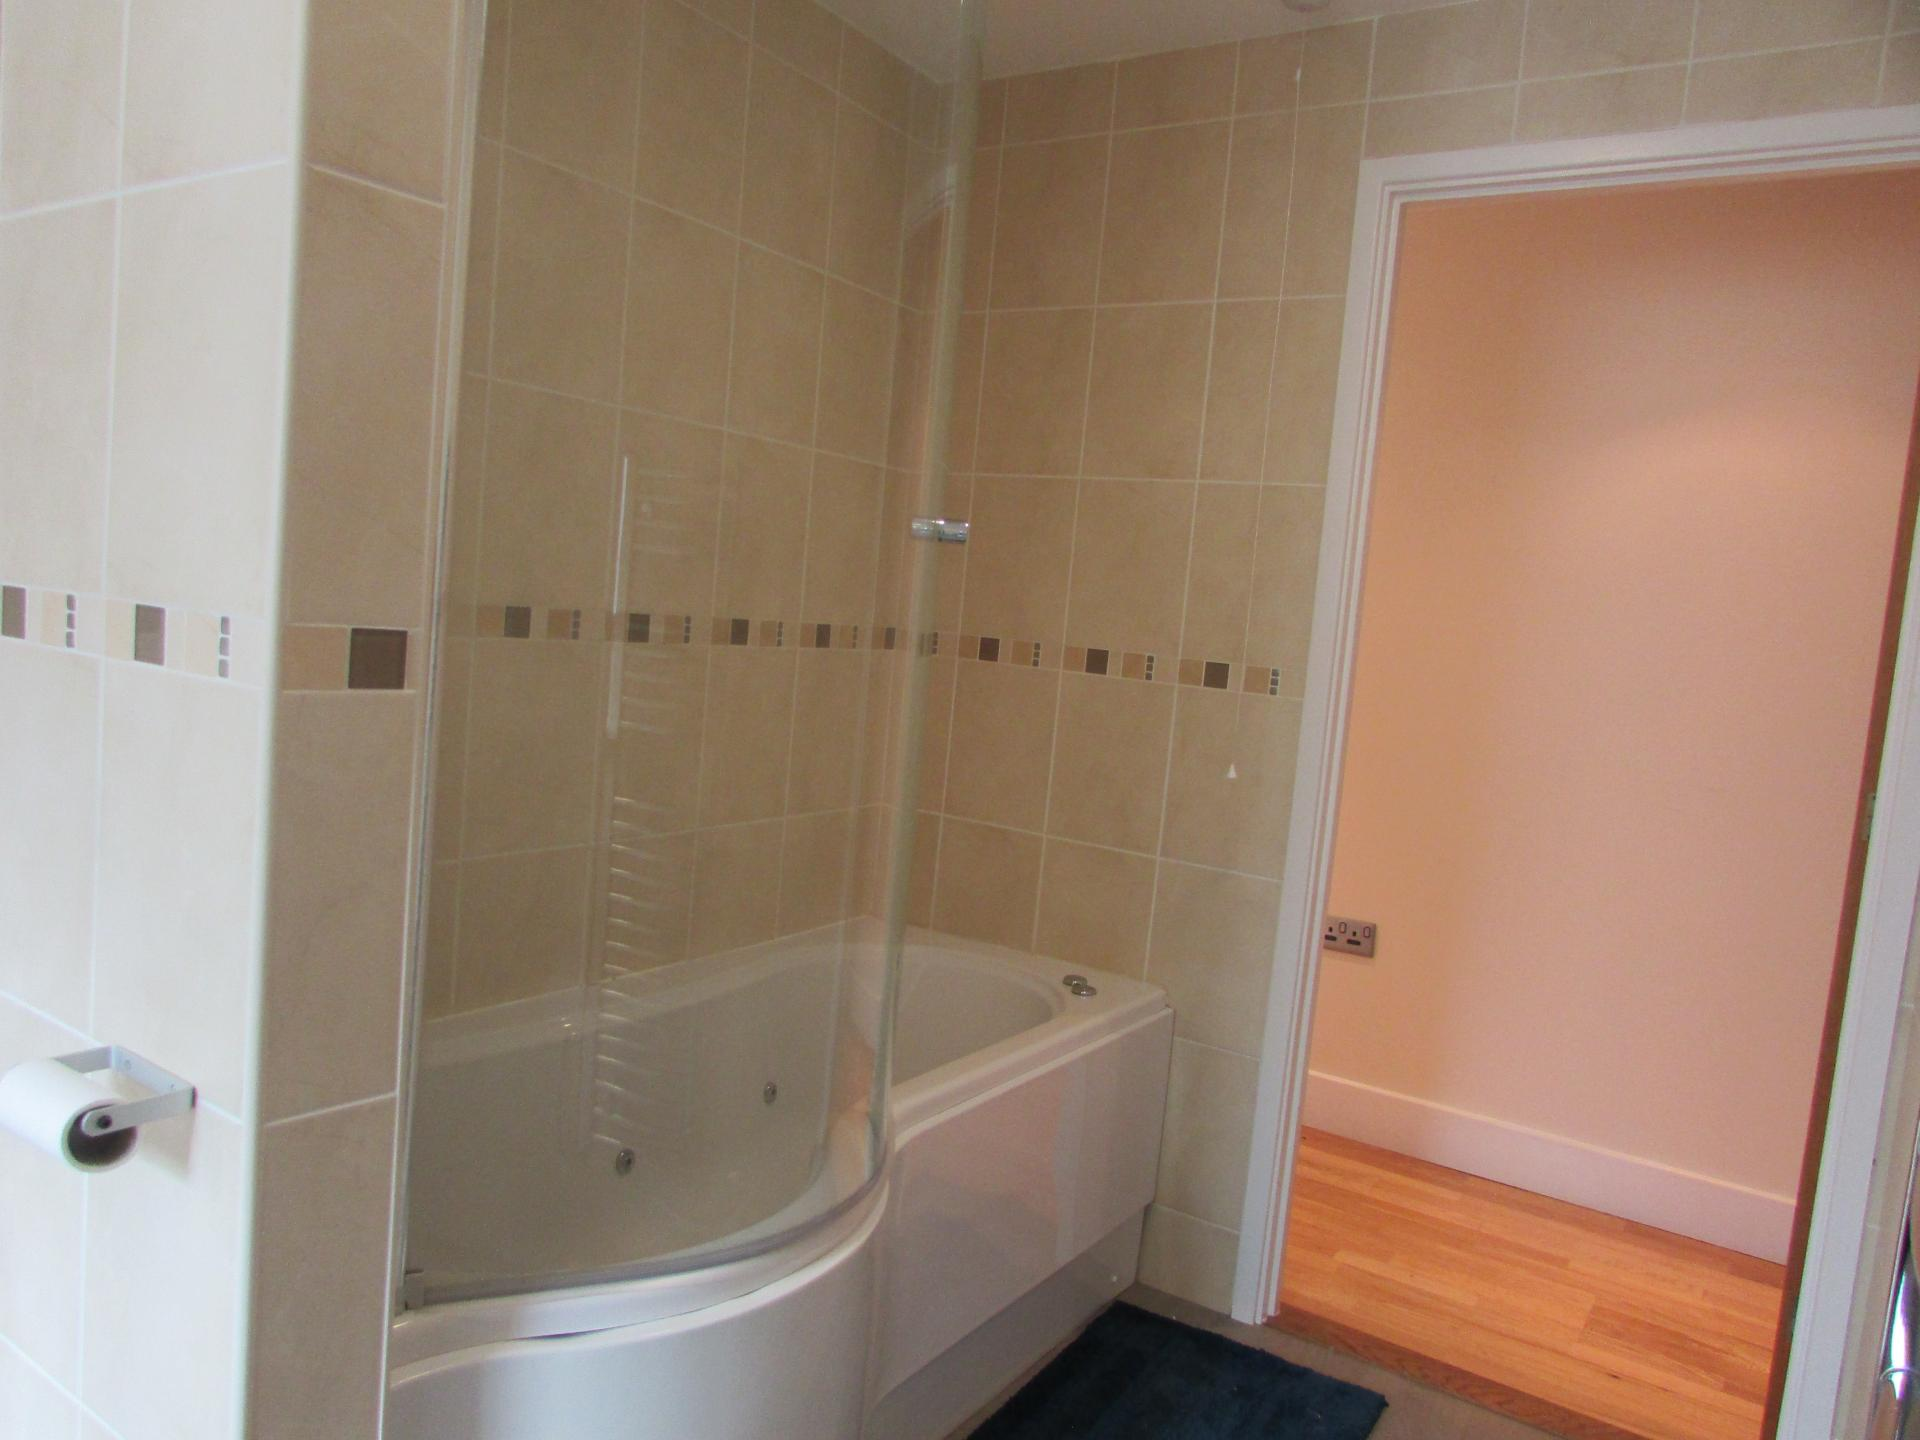 Bathroom at William Yard Apartment, Millbay, Plymouth